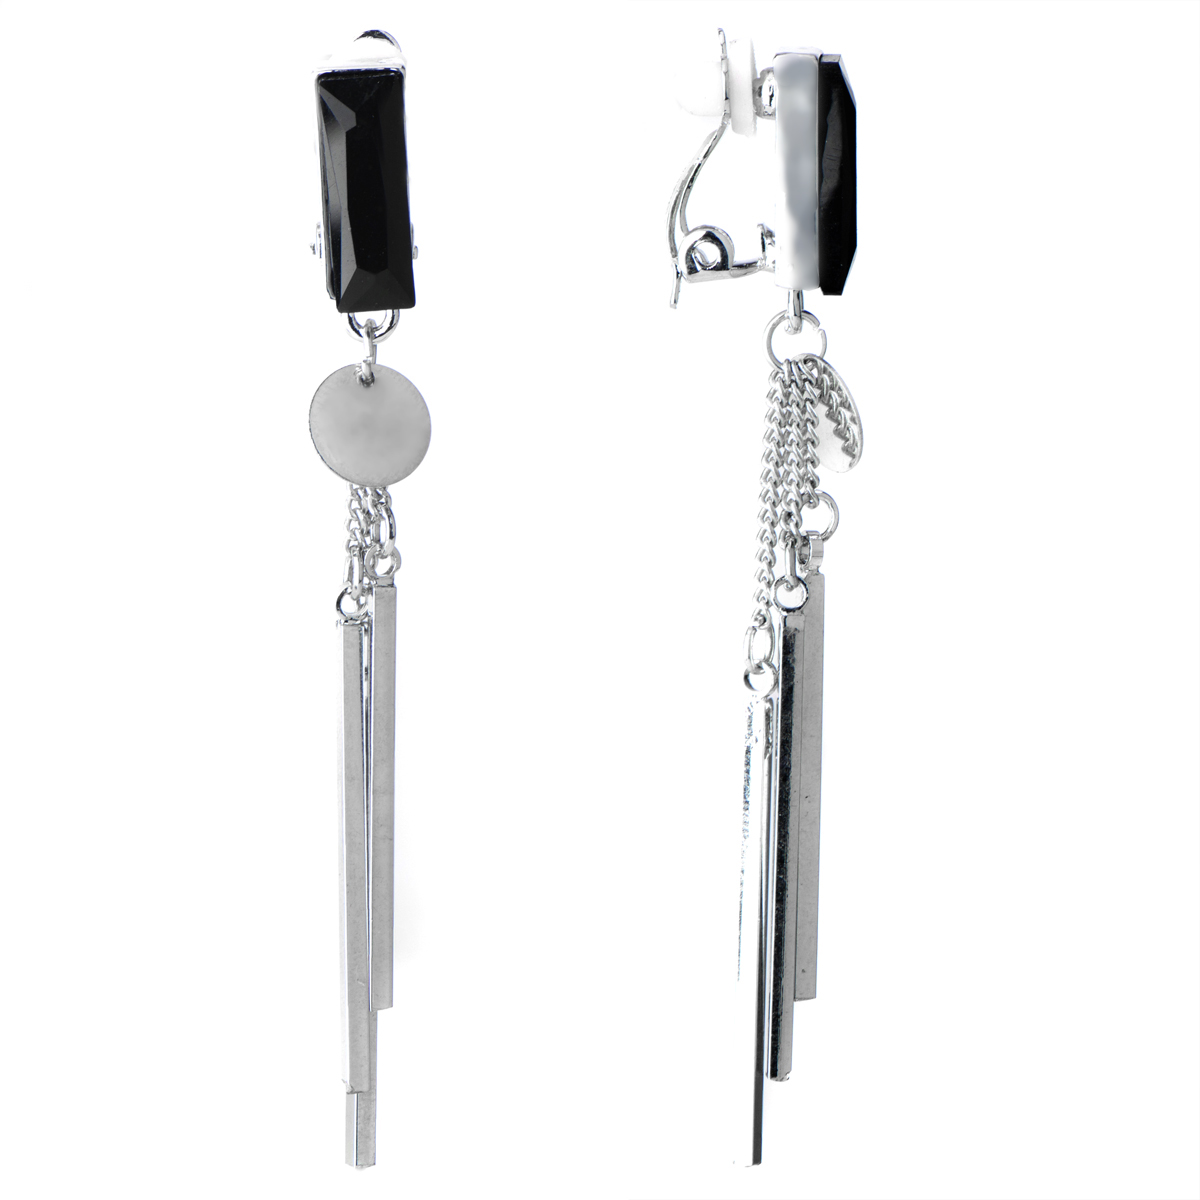 Darcy's Silvertone Rectangle Fringe Dangle Clip On Earrings Roll Off Image  To Close Zoom Window